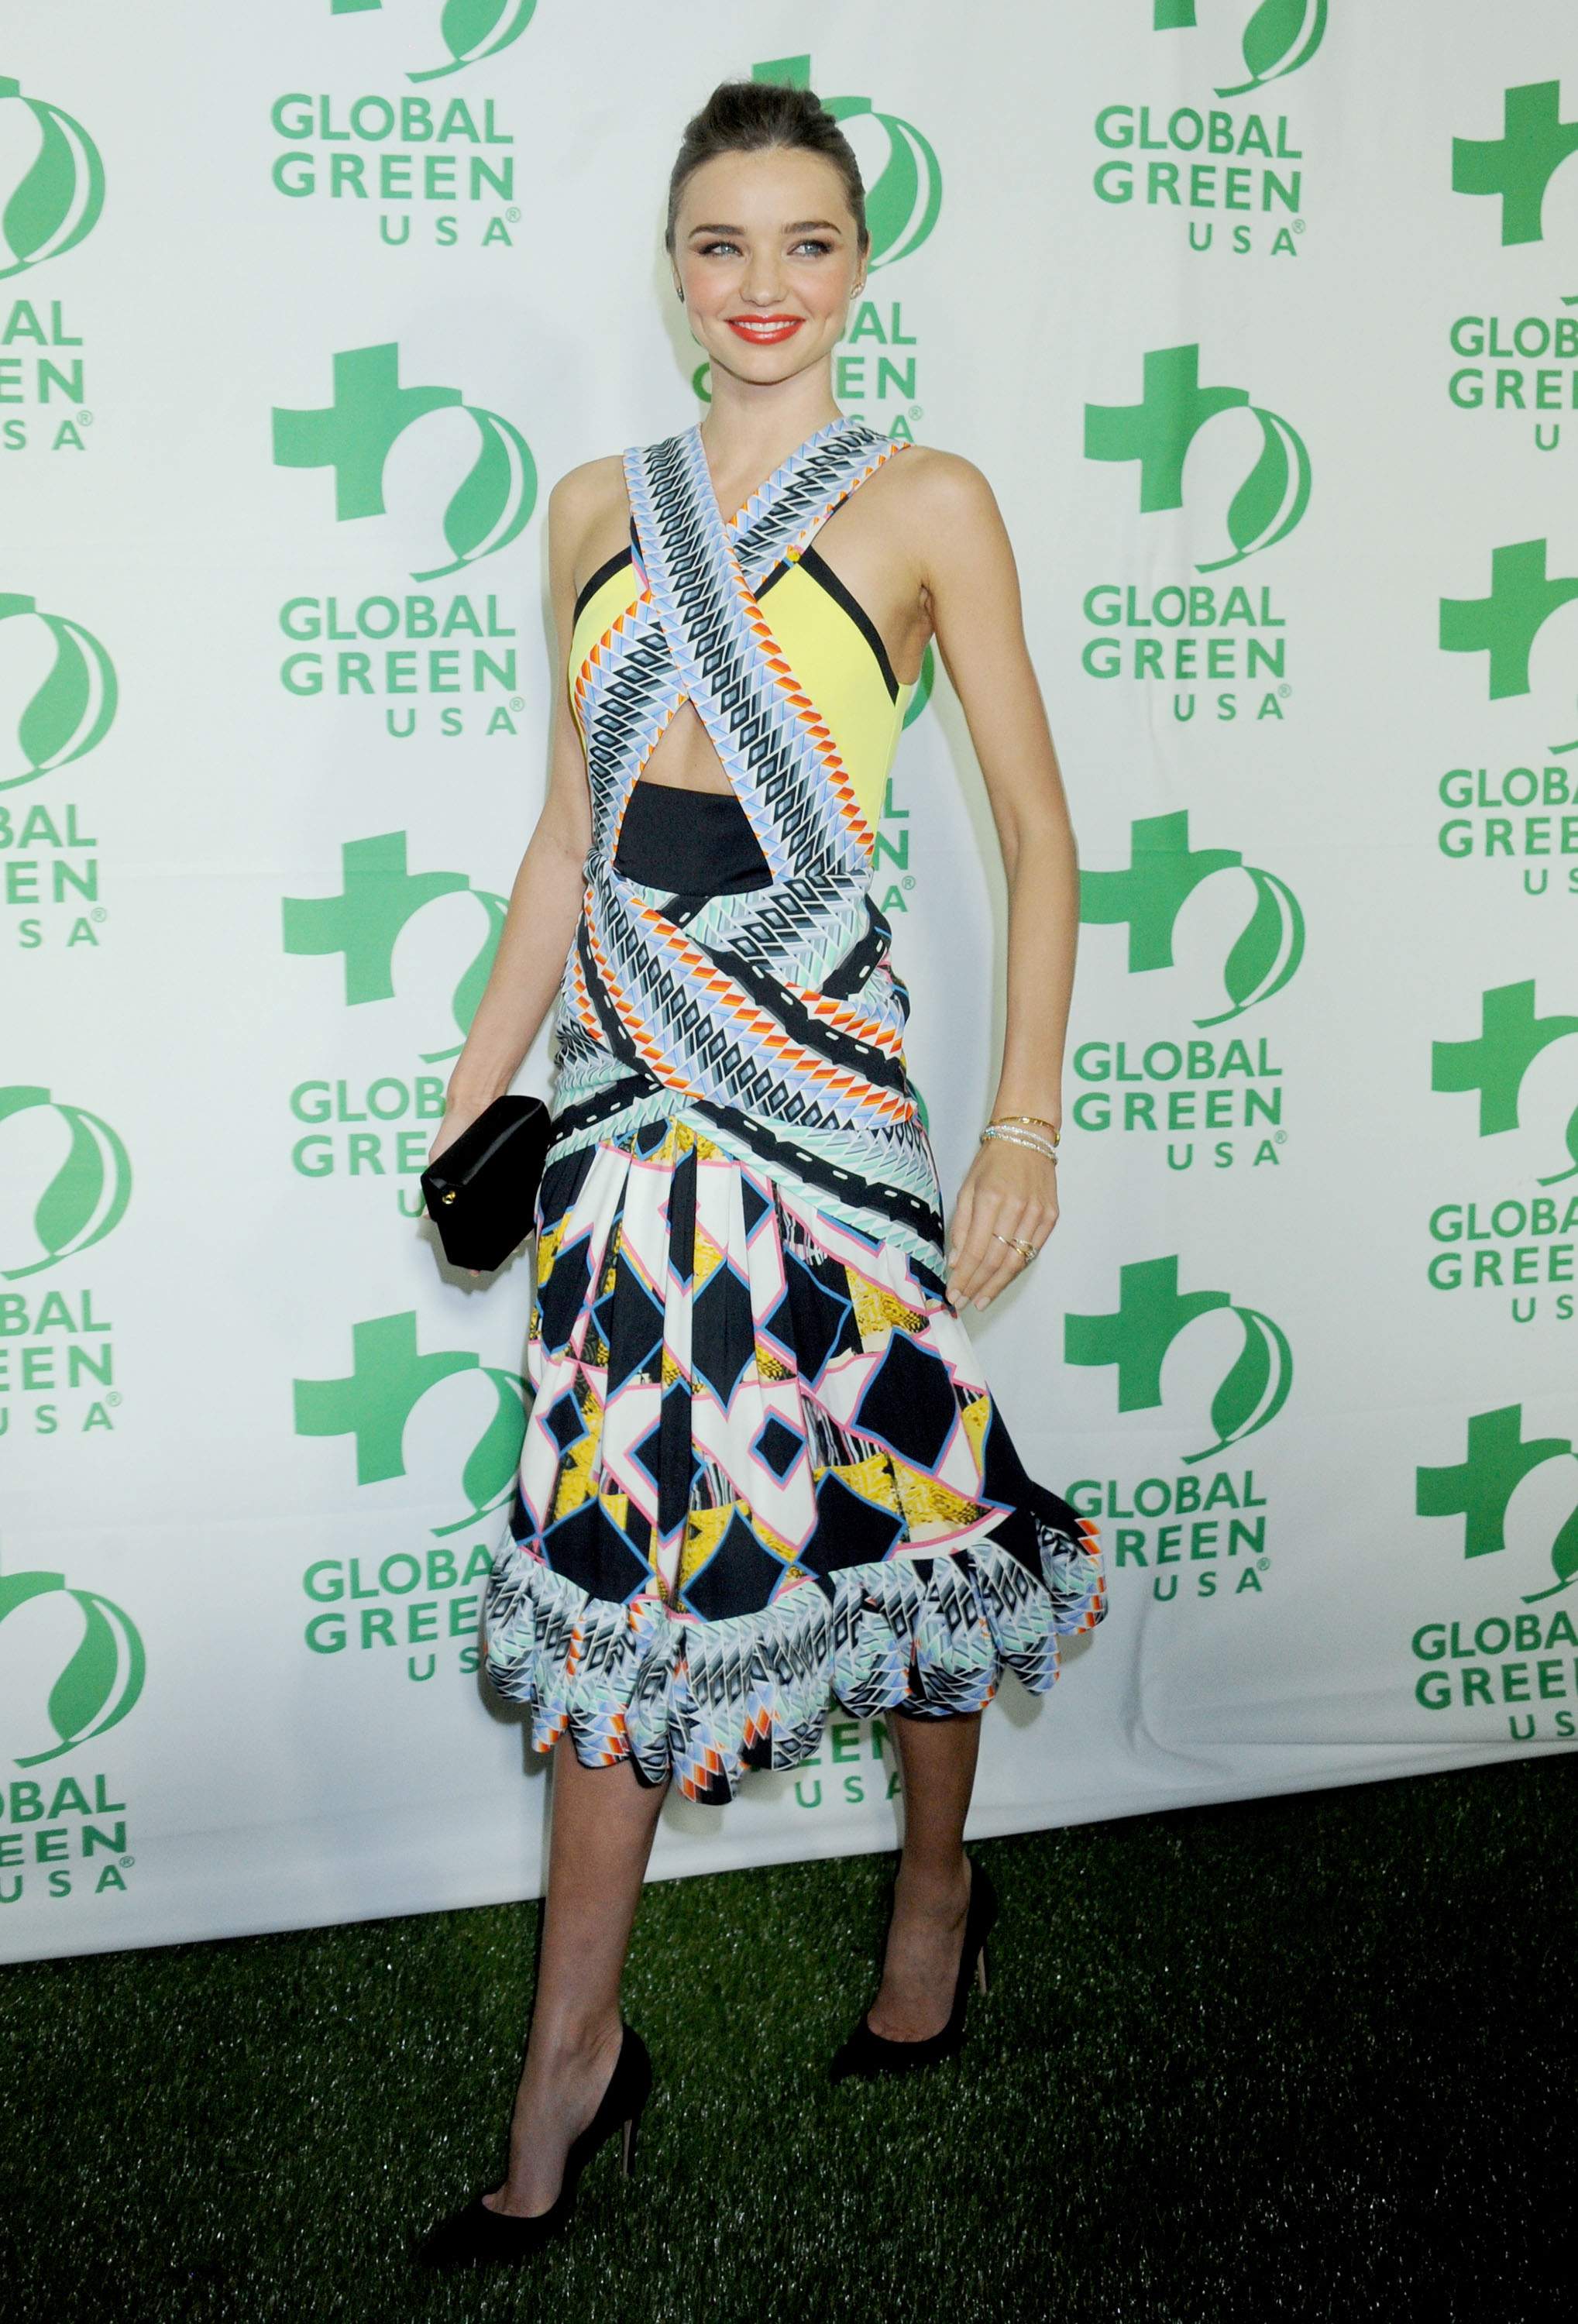 Miranda Kerr wore Spring 2013 Peter Pilotto at the Global Green USA pre-Oscars party in Los Angeles.